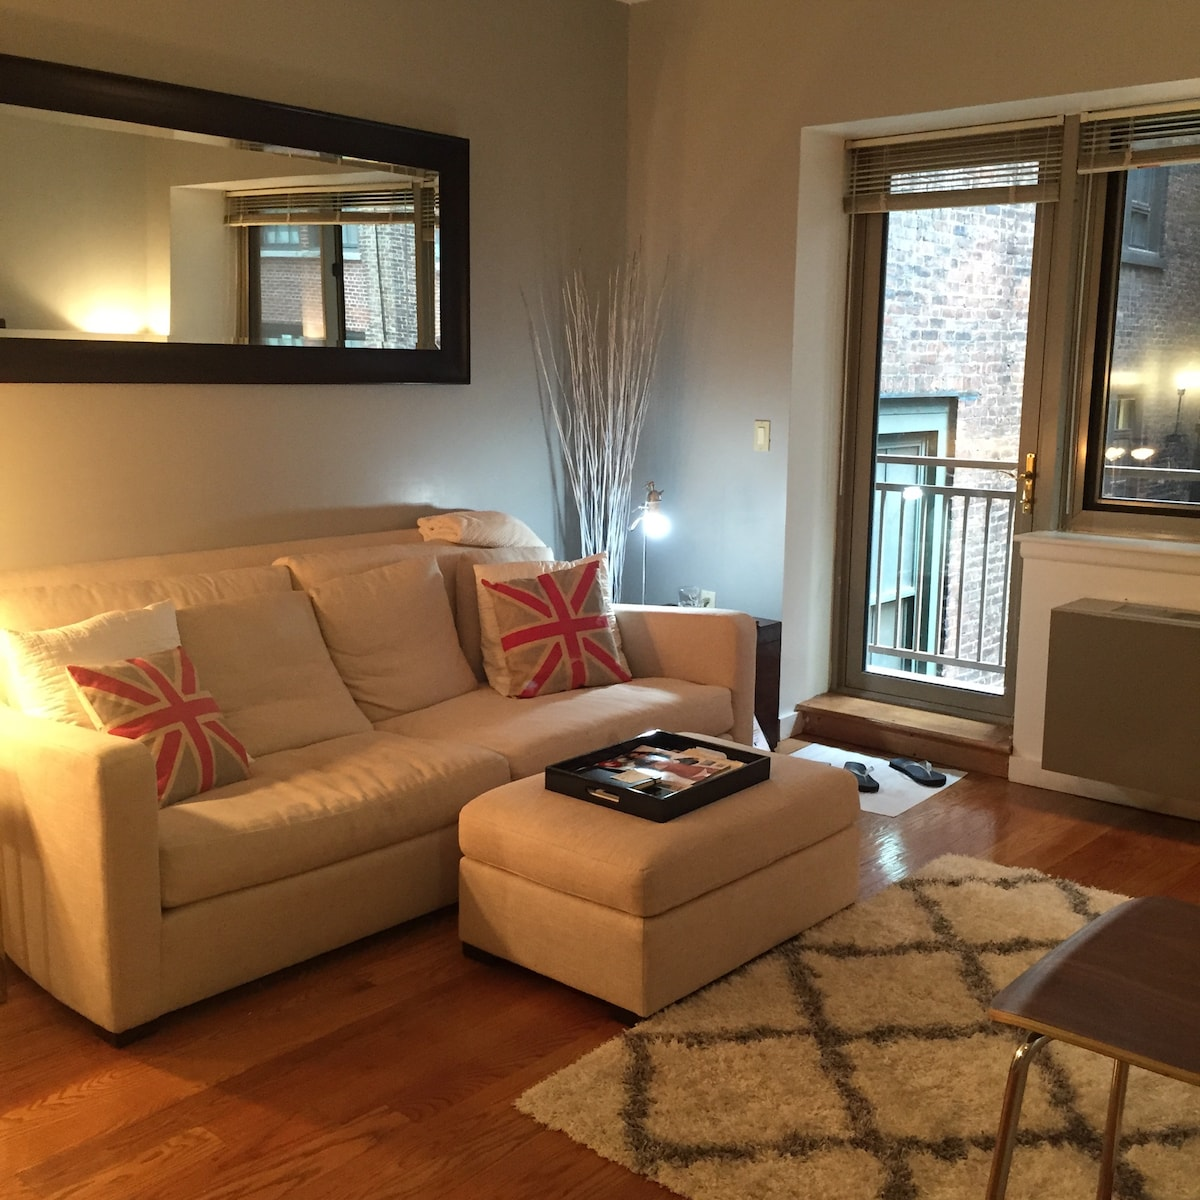 Newly renovated spacious 1 bedroom